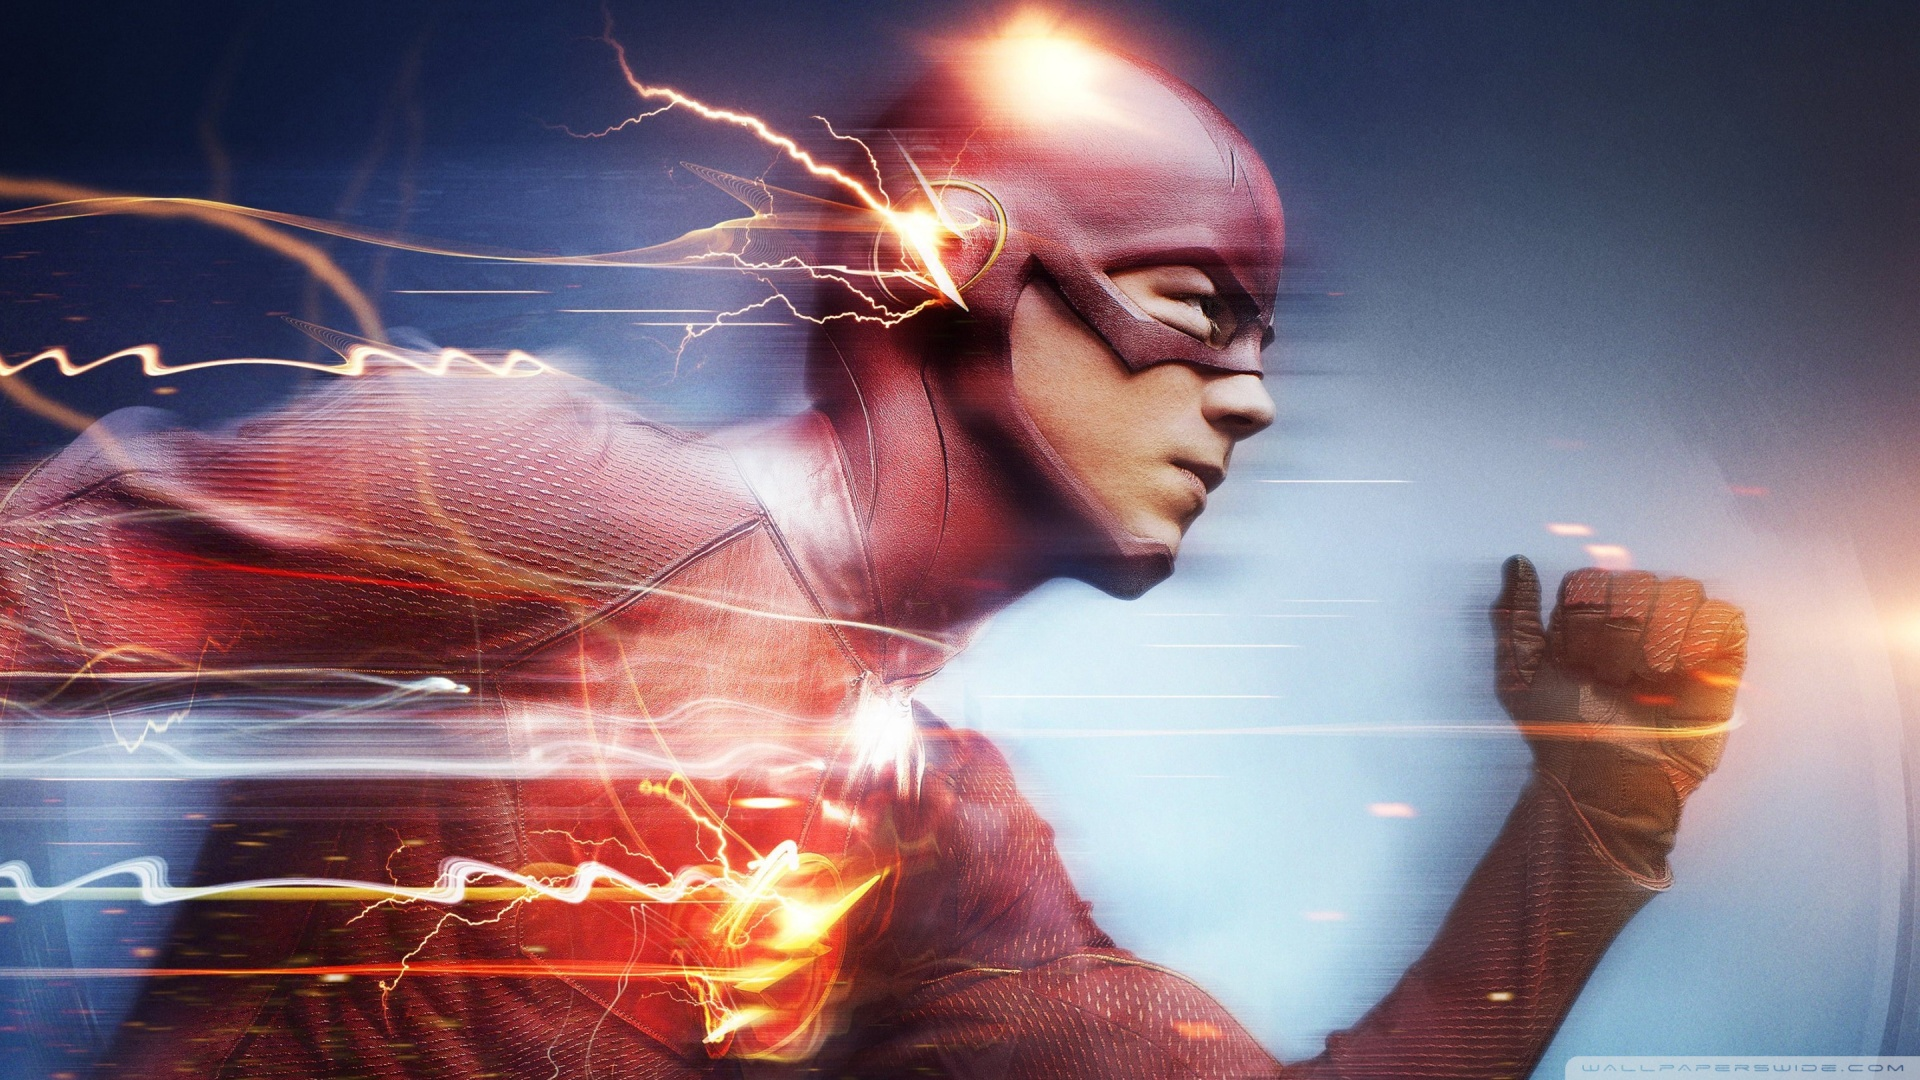 Flash-Superhero-Running-HD-1920x1080-Need-iPhone-S-Plus-Background-for-wallpaper-wpc9004977